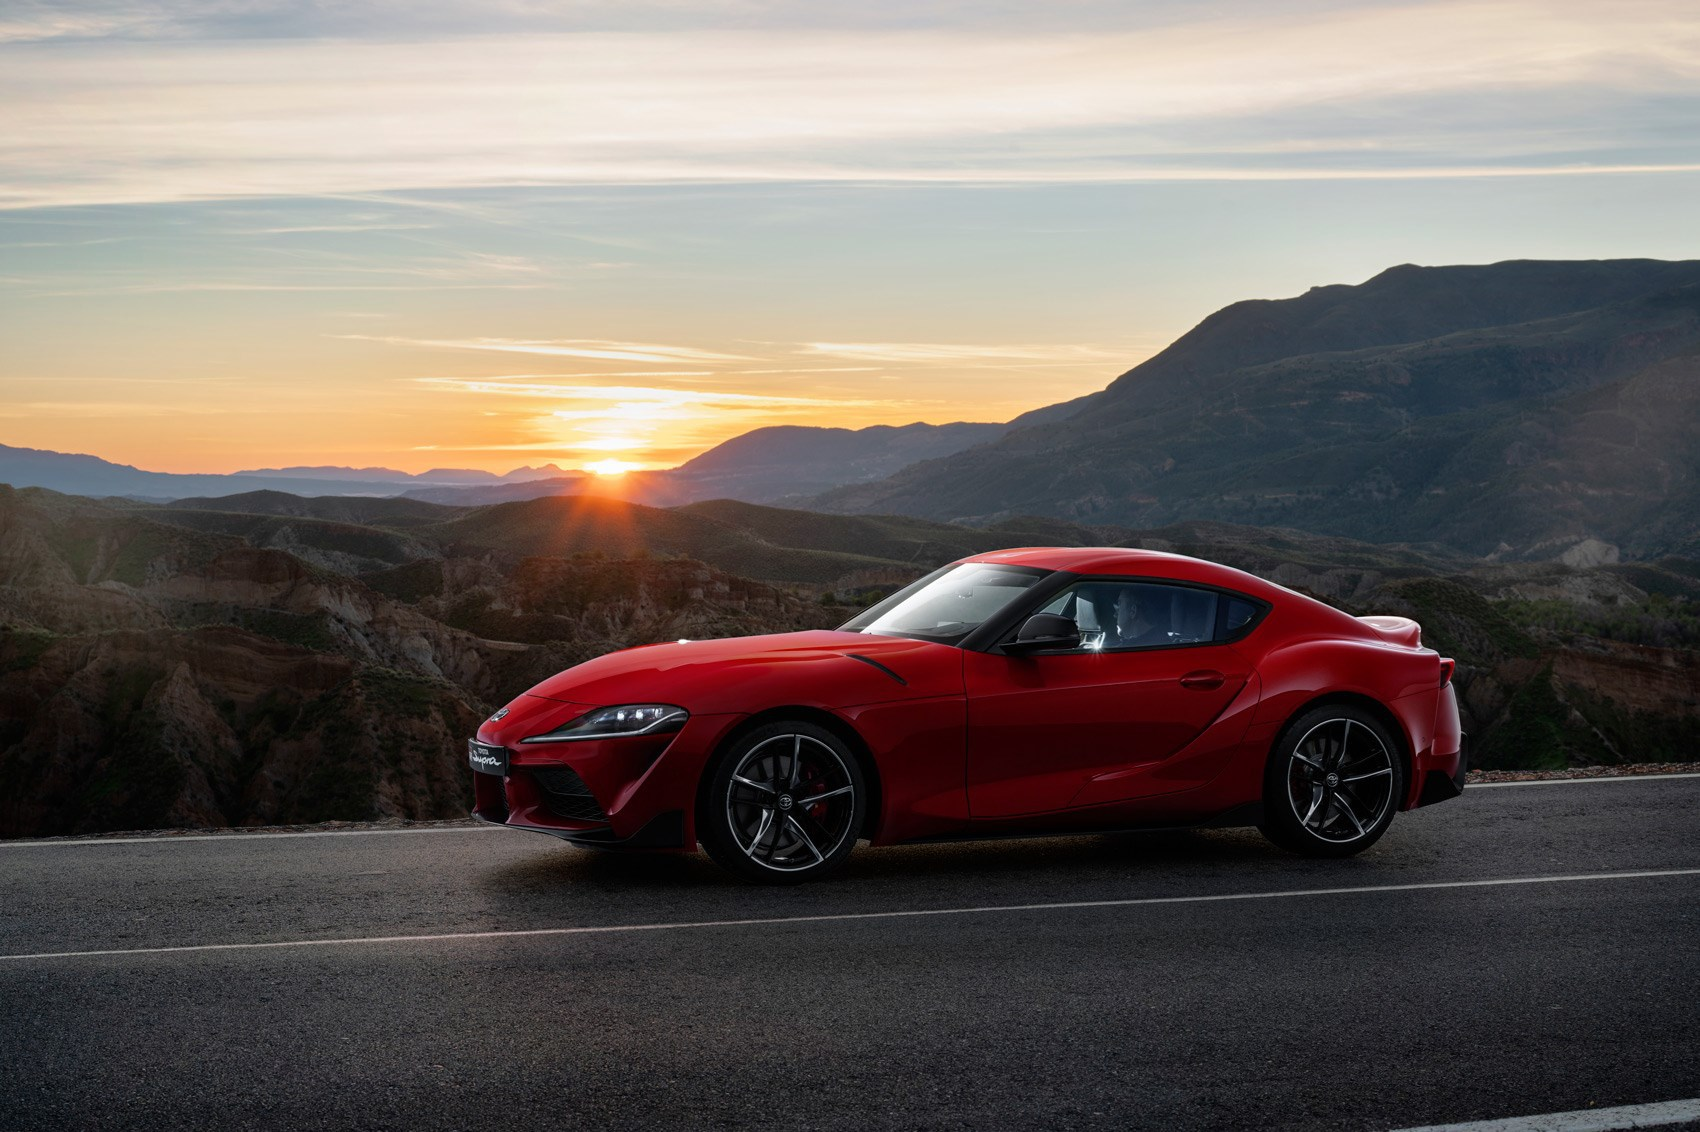 noua-toyota-supra-are-340-de-cp-